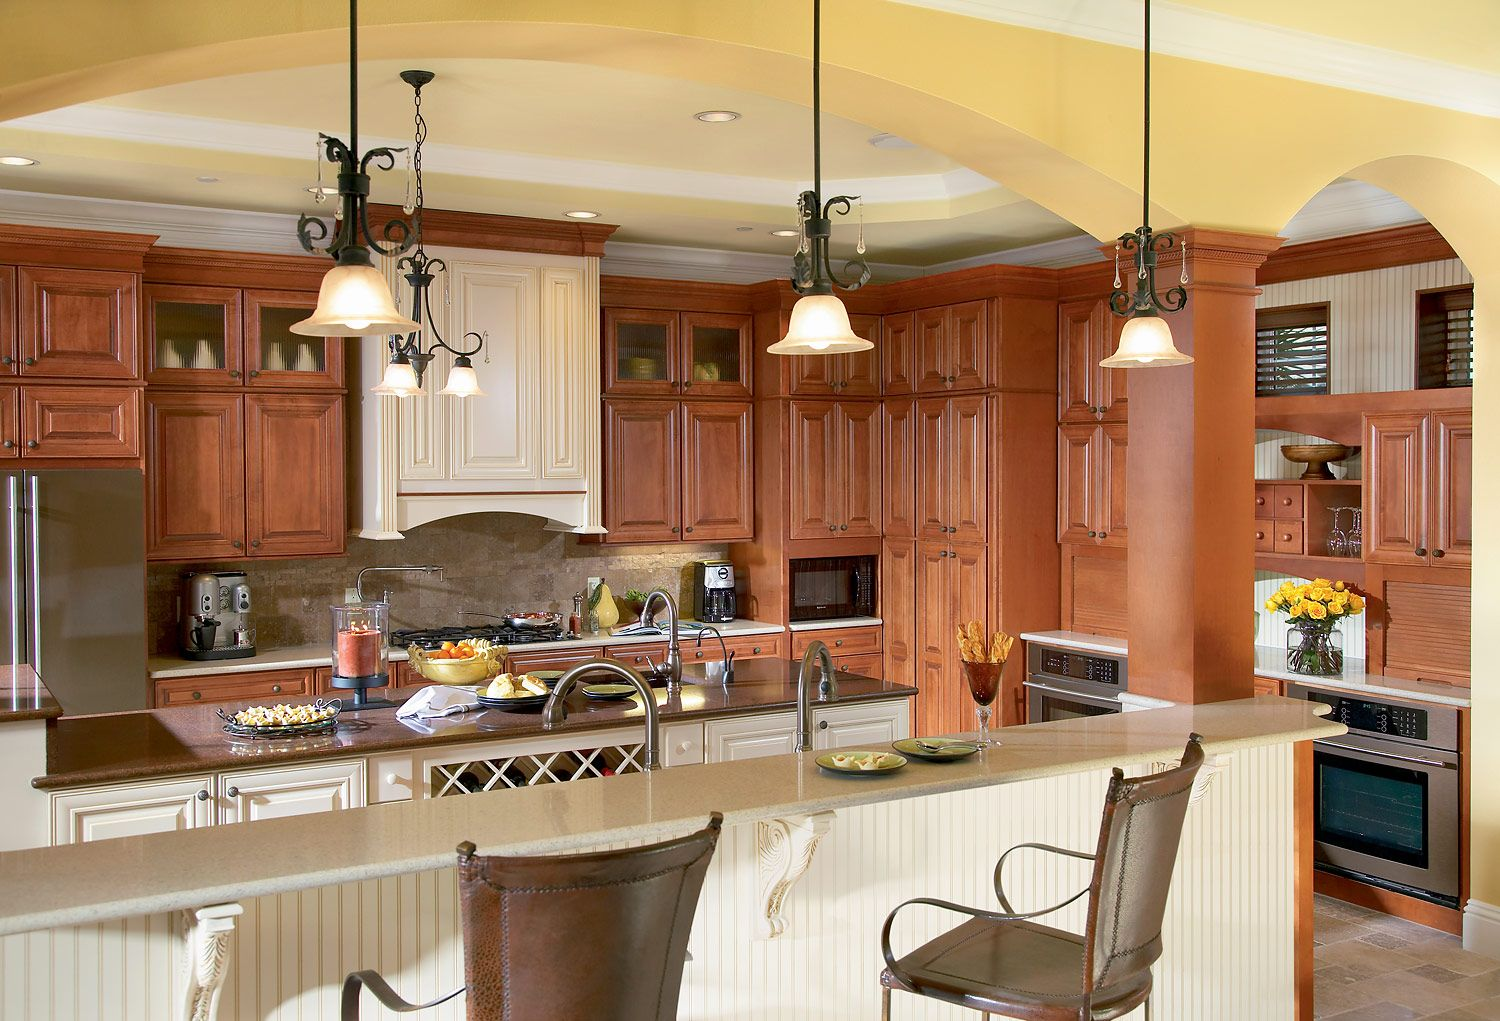 Best Kitchen Gallery: I Need Your Advice Kitchen Corner Cabi S Kitchens Kitchen of Maple Cognac Kitchen Cabinets on cal-ite.com